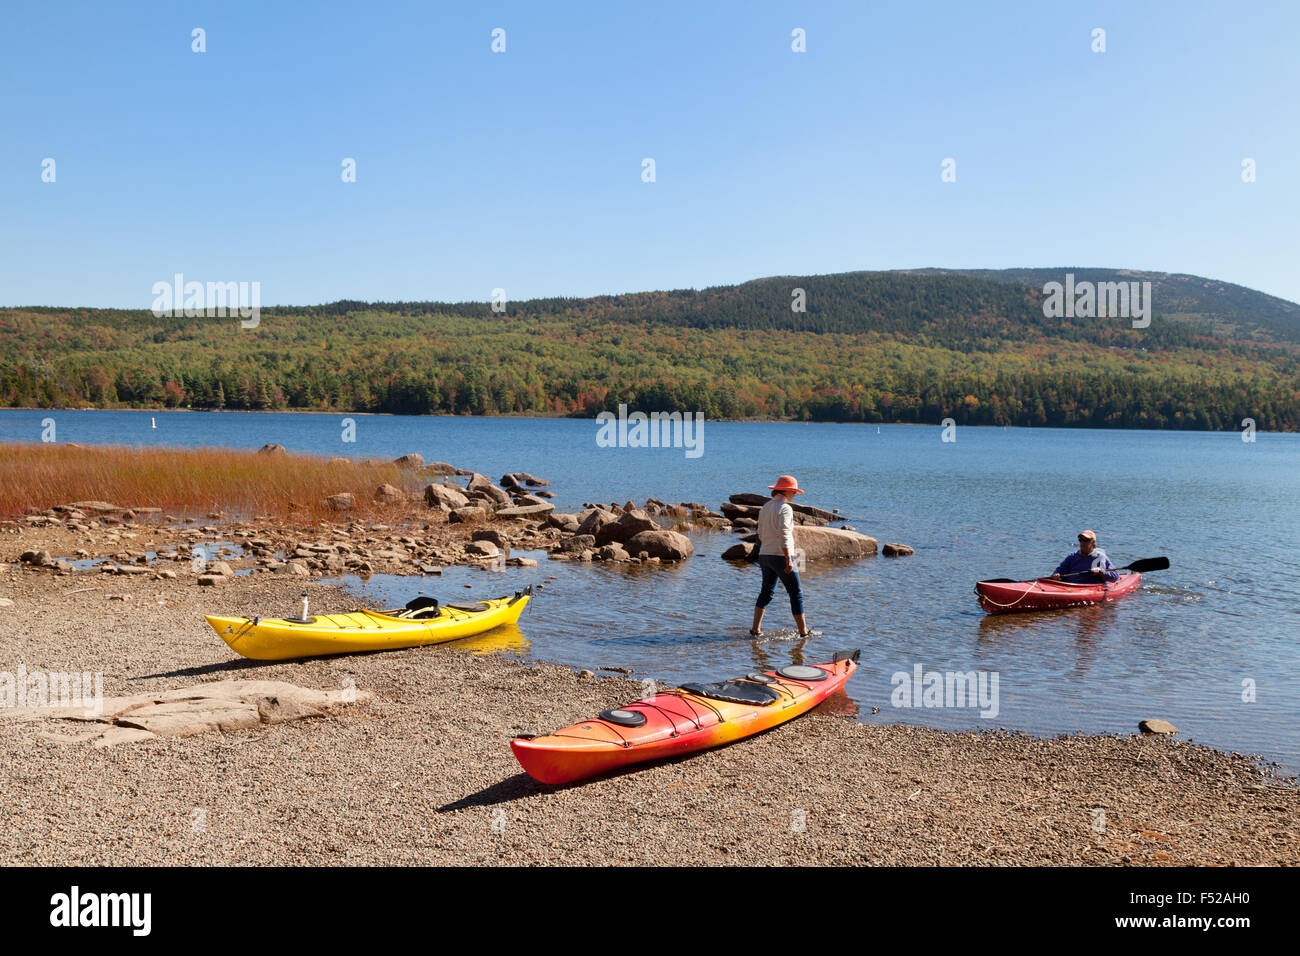 Canoeing and kayaking, Eagle Lake, Acadia National Park, Maine USA - Stock Image